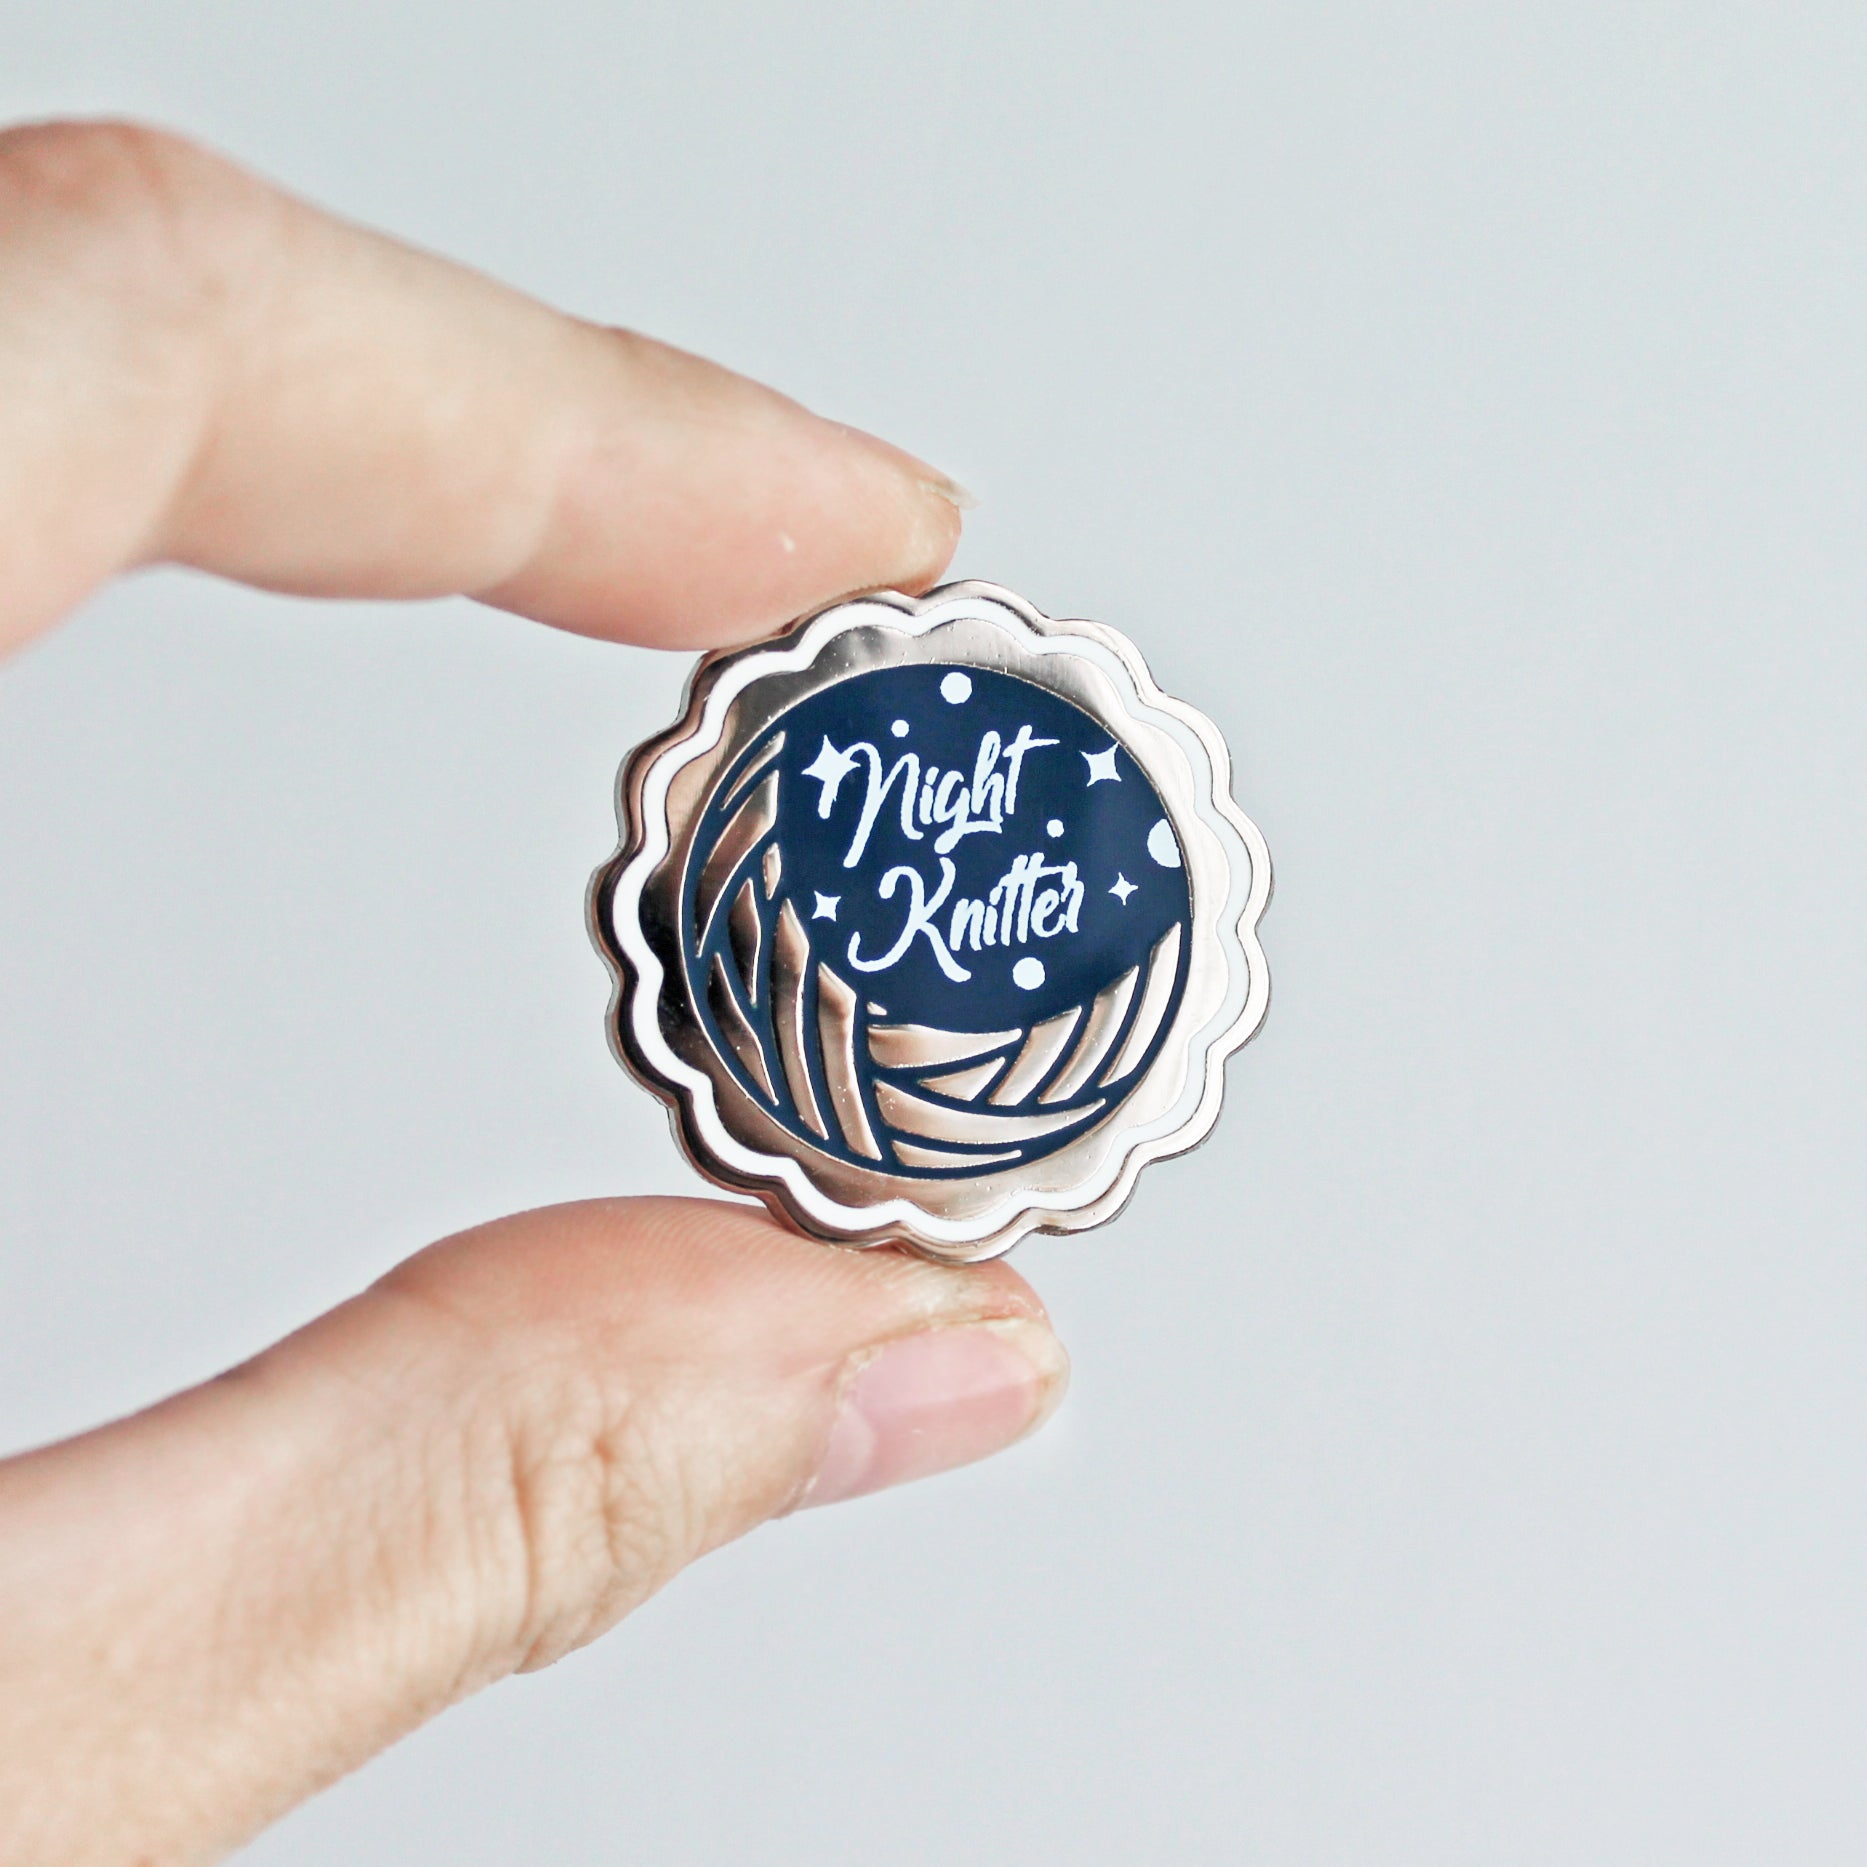 Night Knitter Enamel Pin